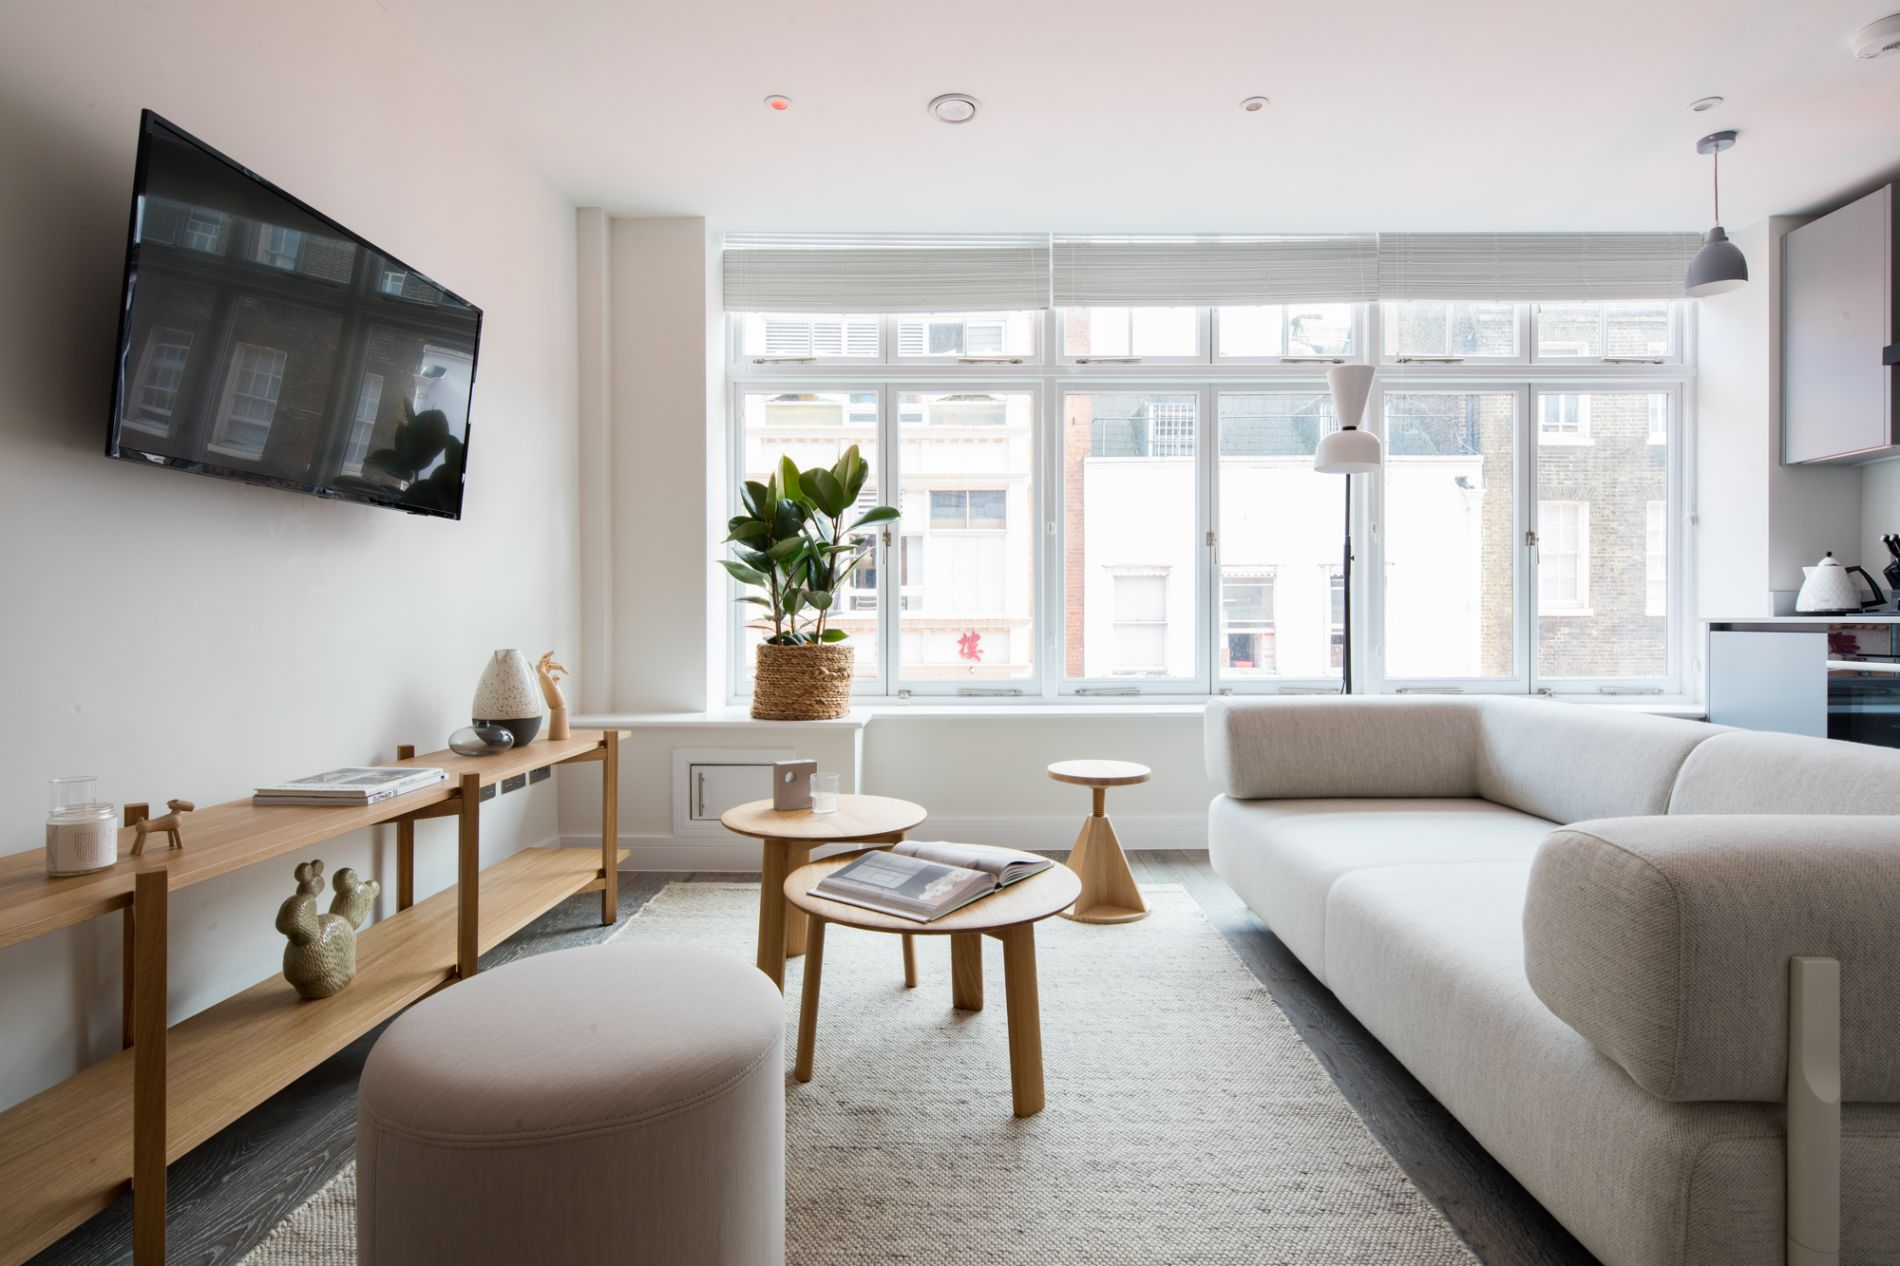 Serviced accommodation in Leicester square London that can be booked instantly